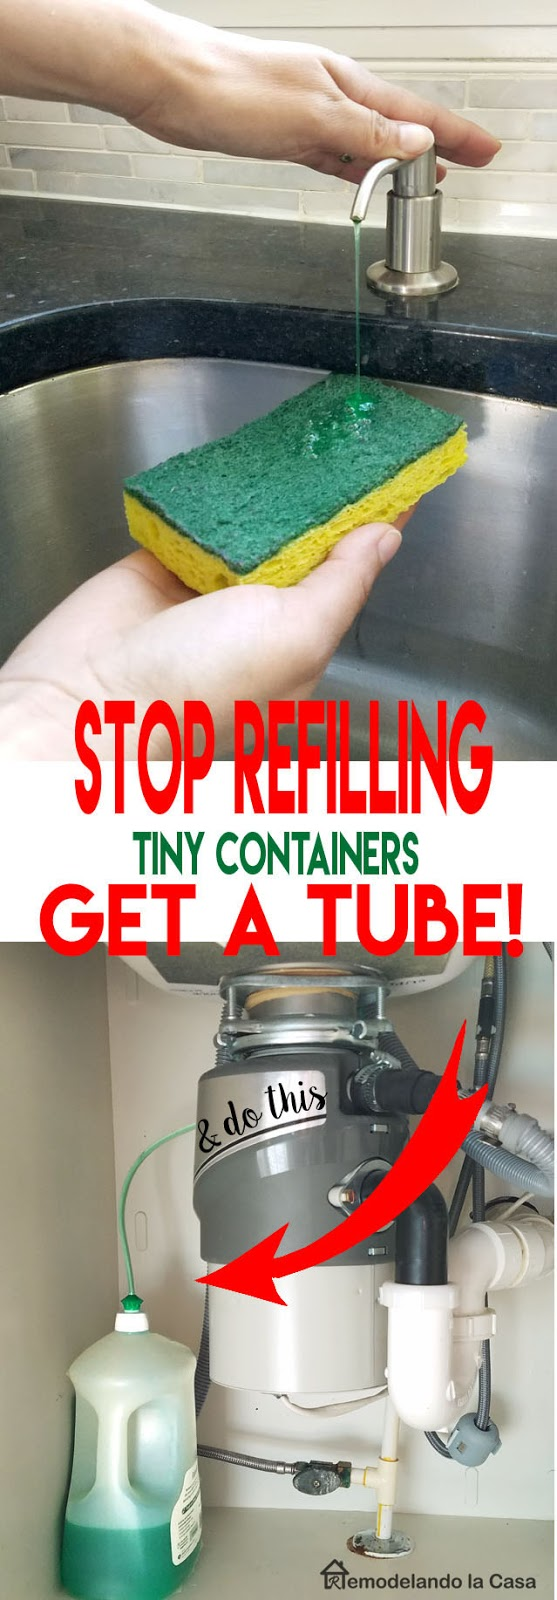 How to getting rid of the little soap dispenser and install a tube to a big container or soap under the sink